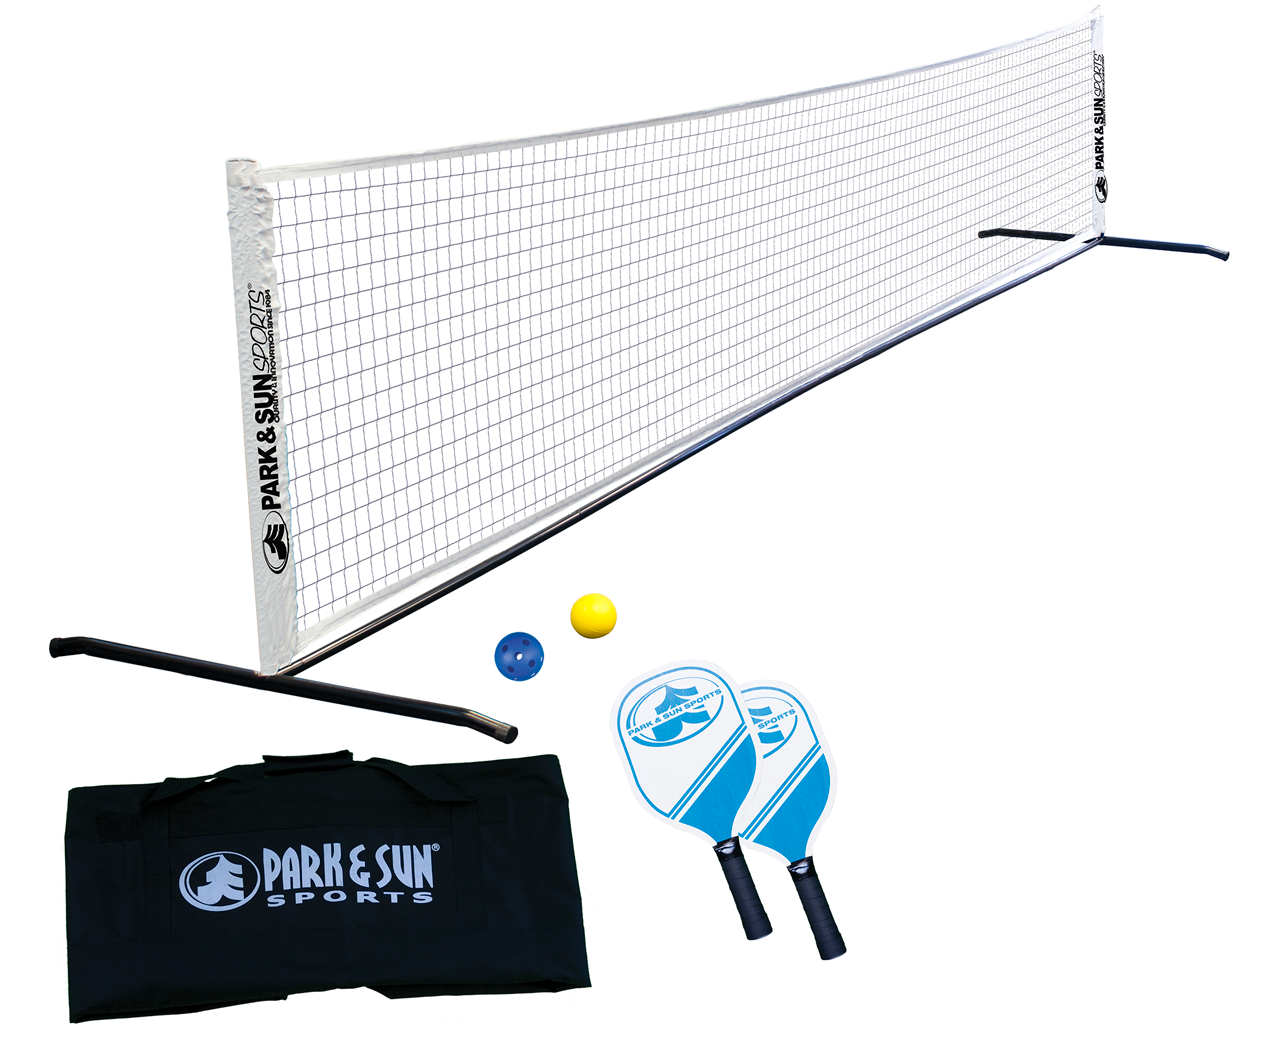 Park and Sports Pickleball Product Layout